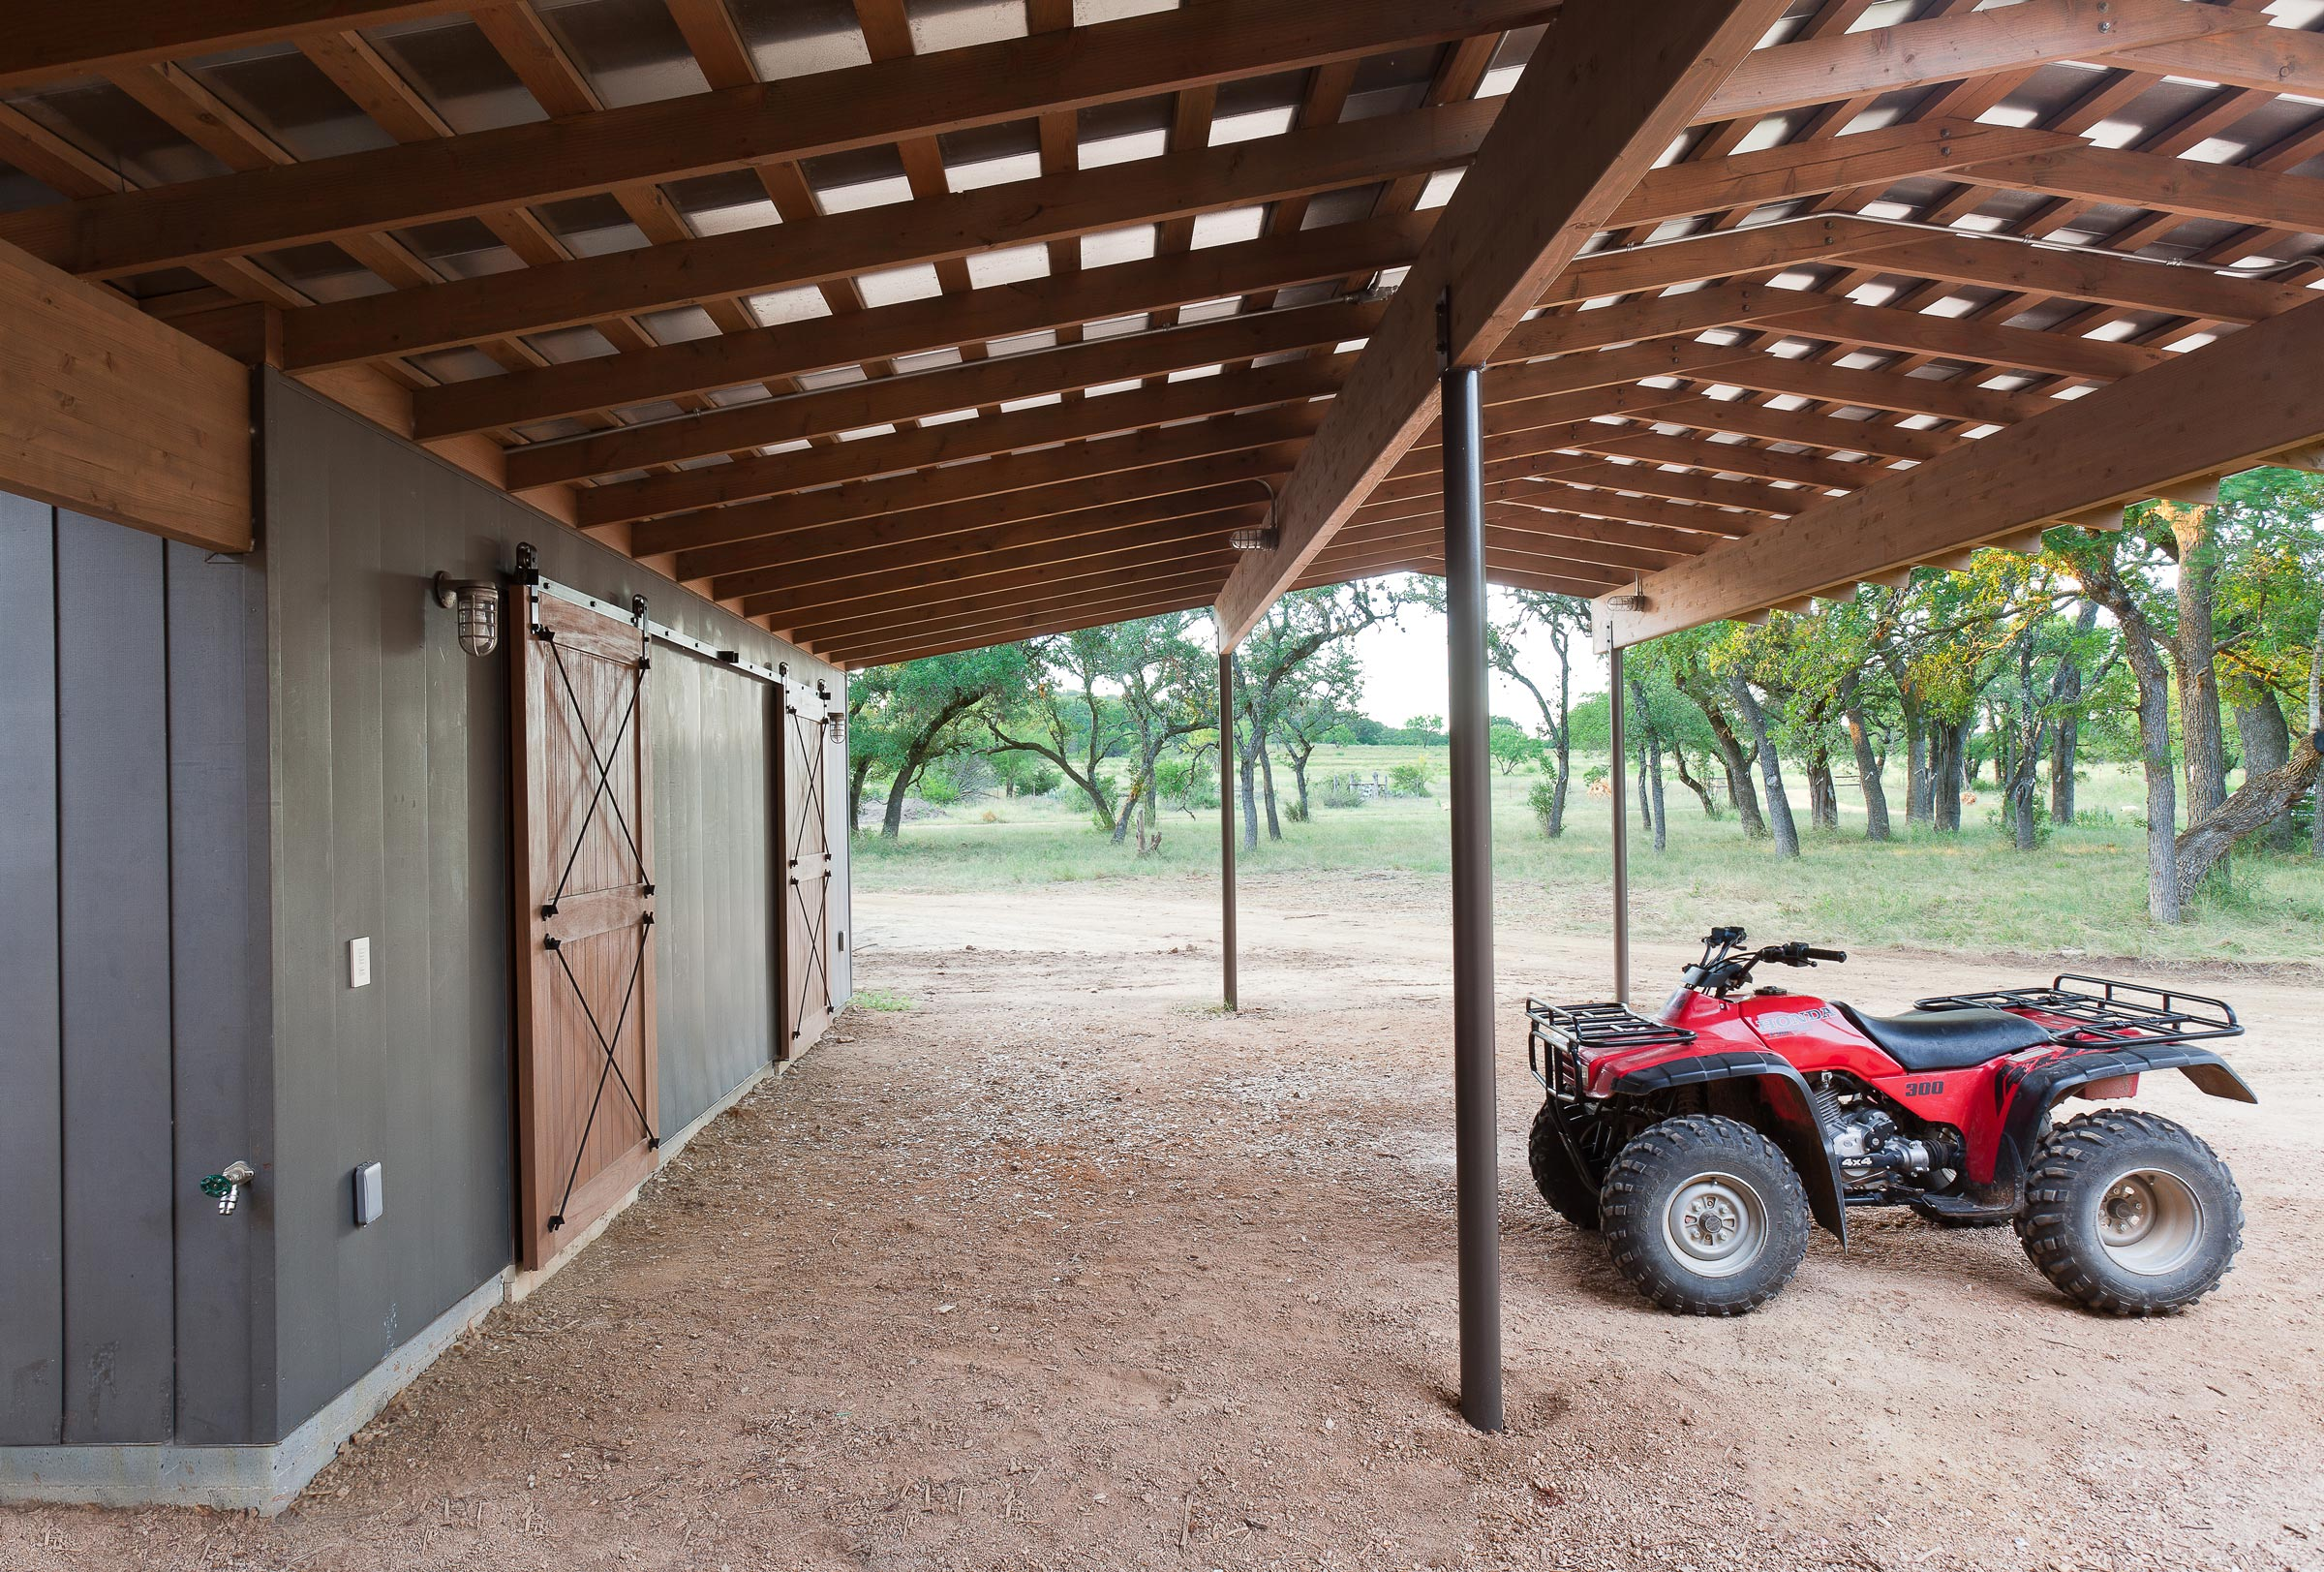 furman_keil_rammed_earth_ranch_4.jpg